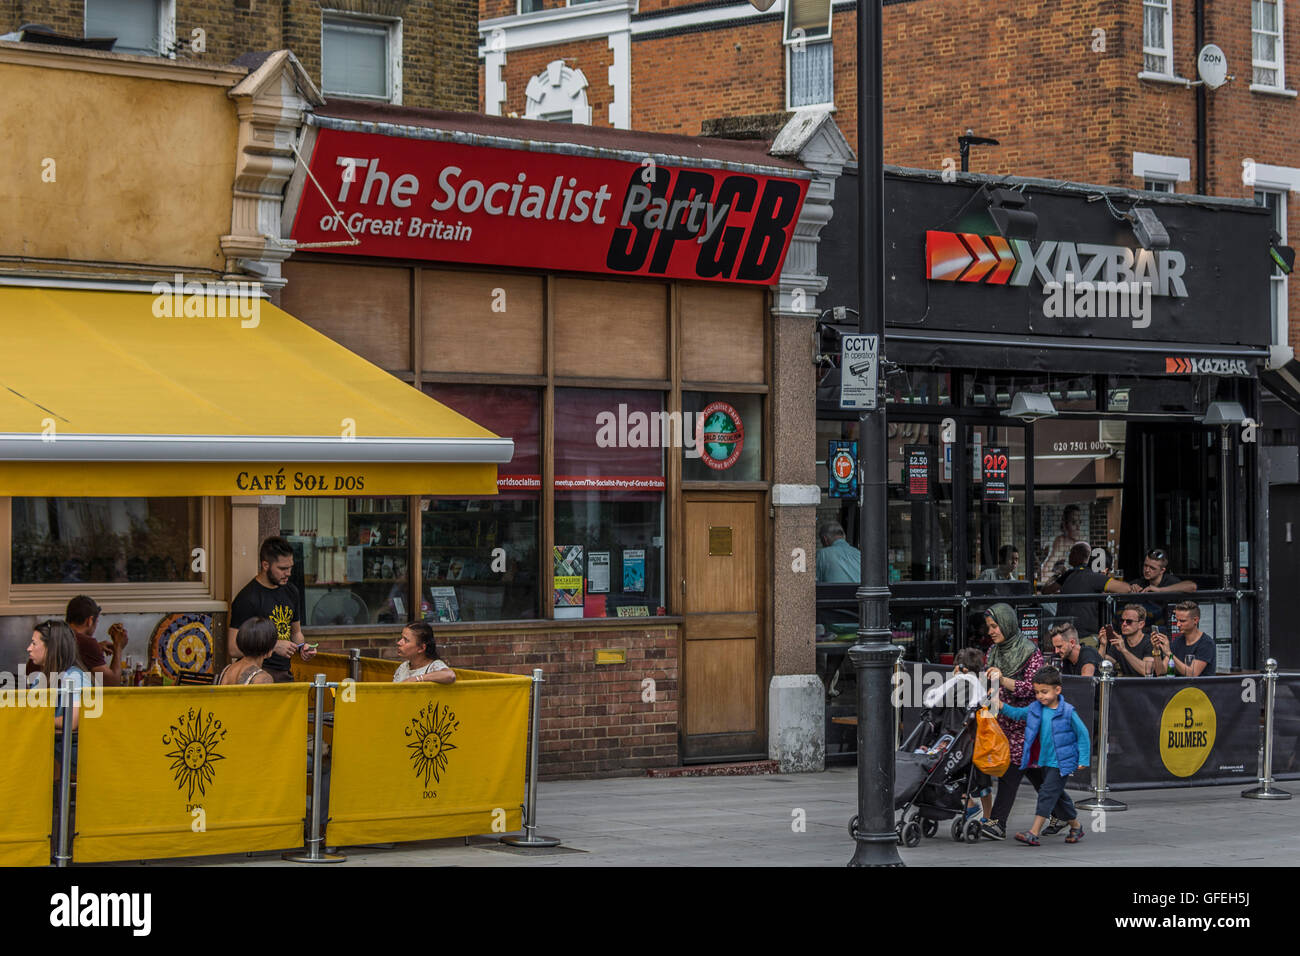 The Socialist Part of Great Britain, Clapham High Street - Stock Image